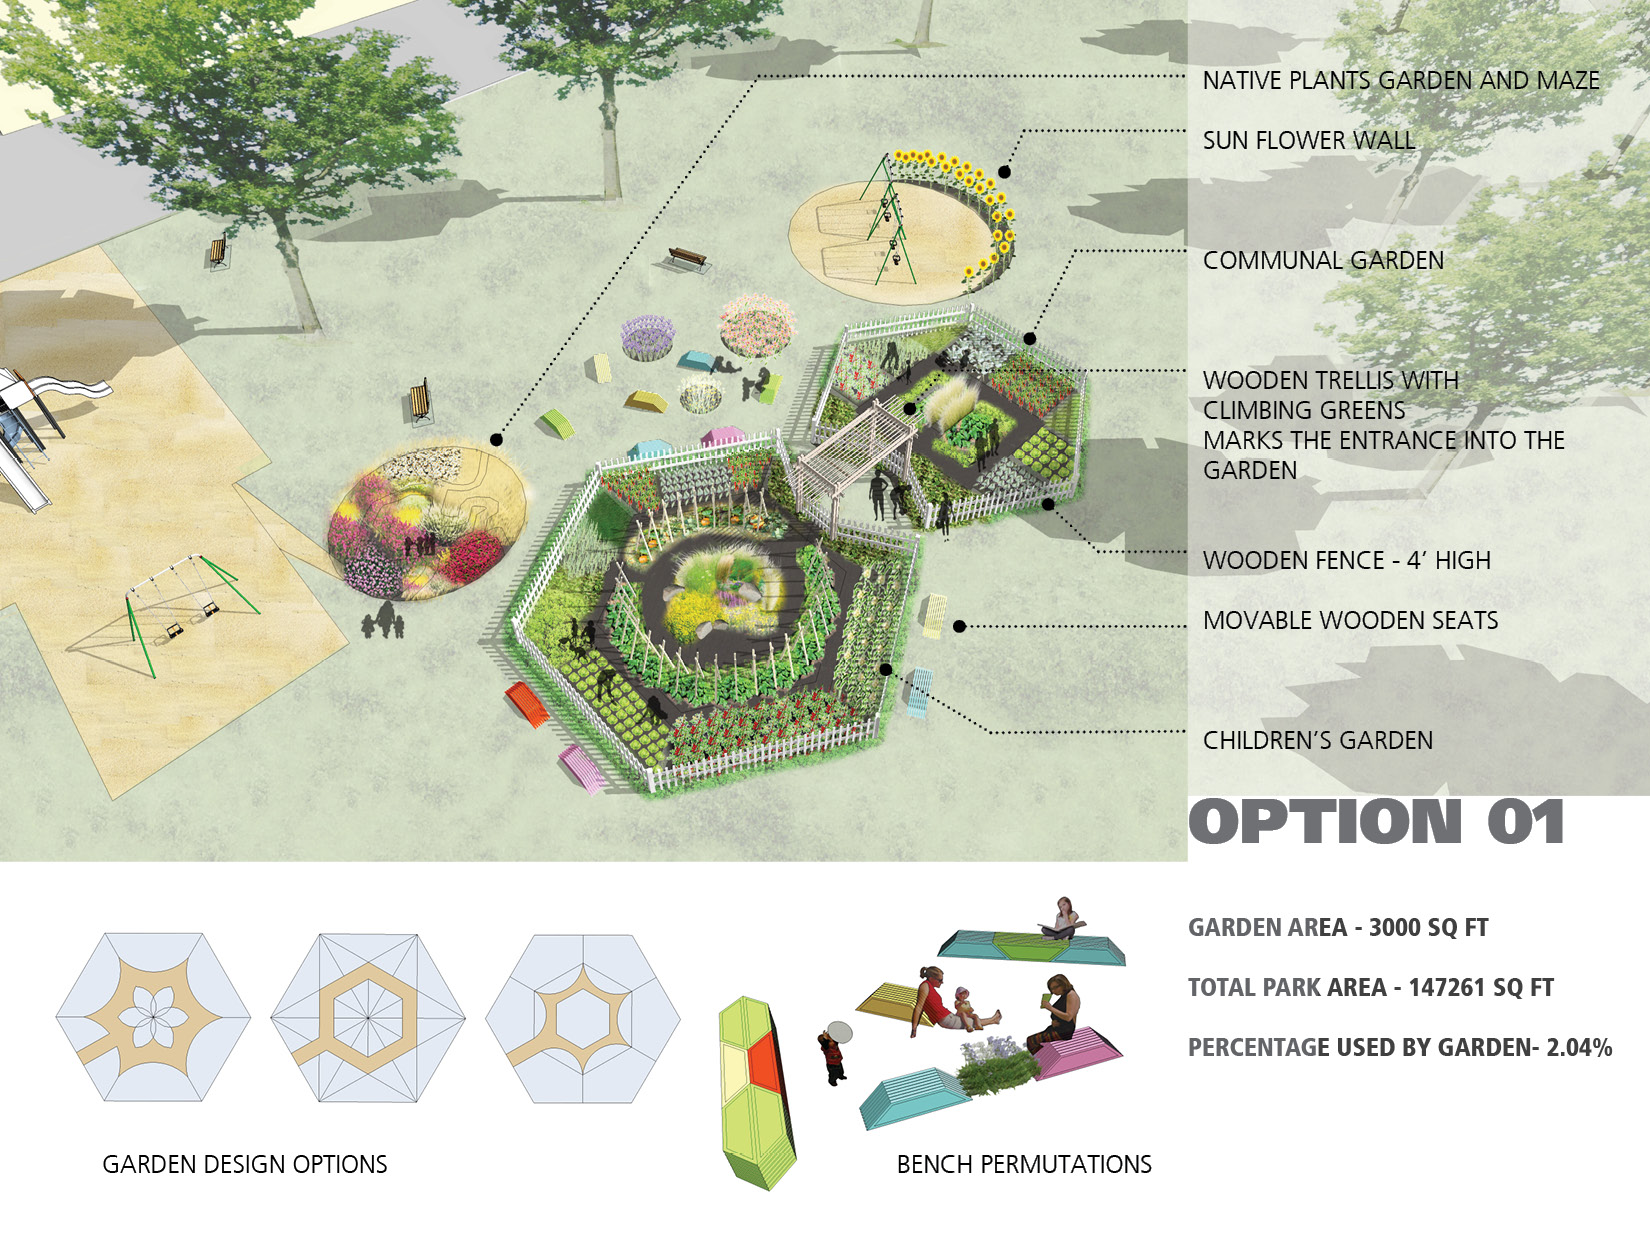 garden designs dallington pollinators community garden